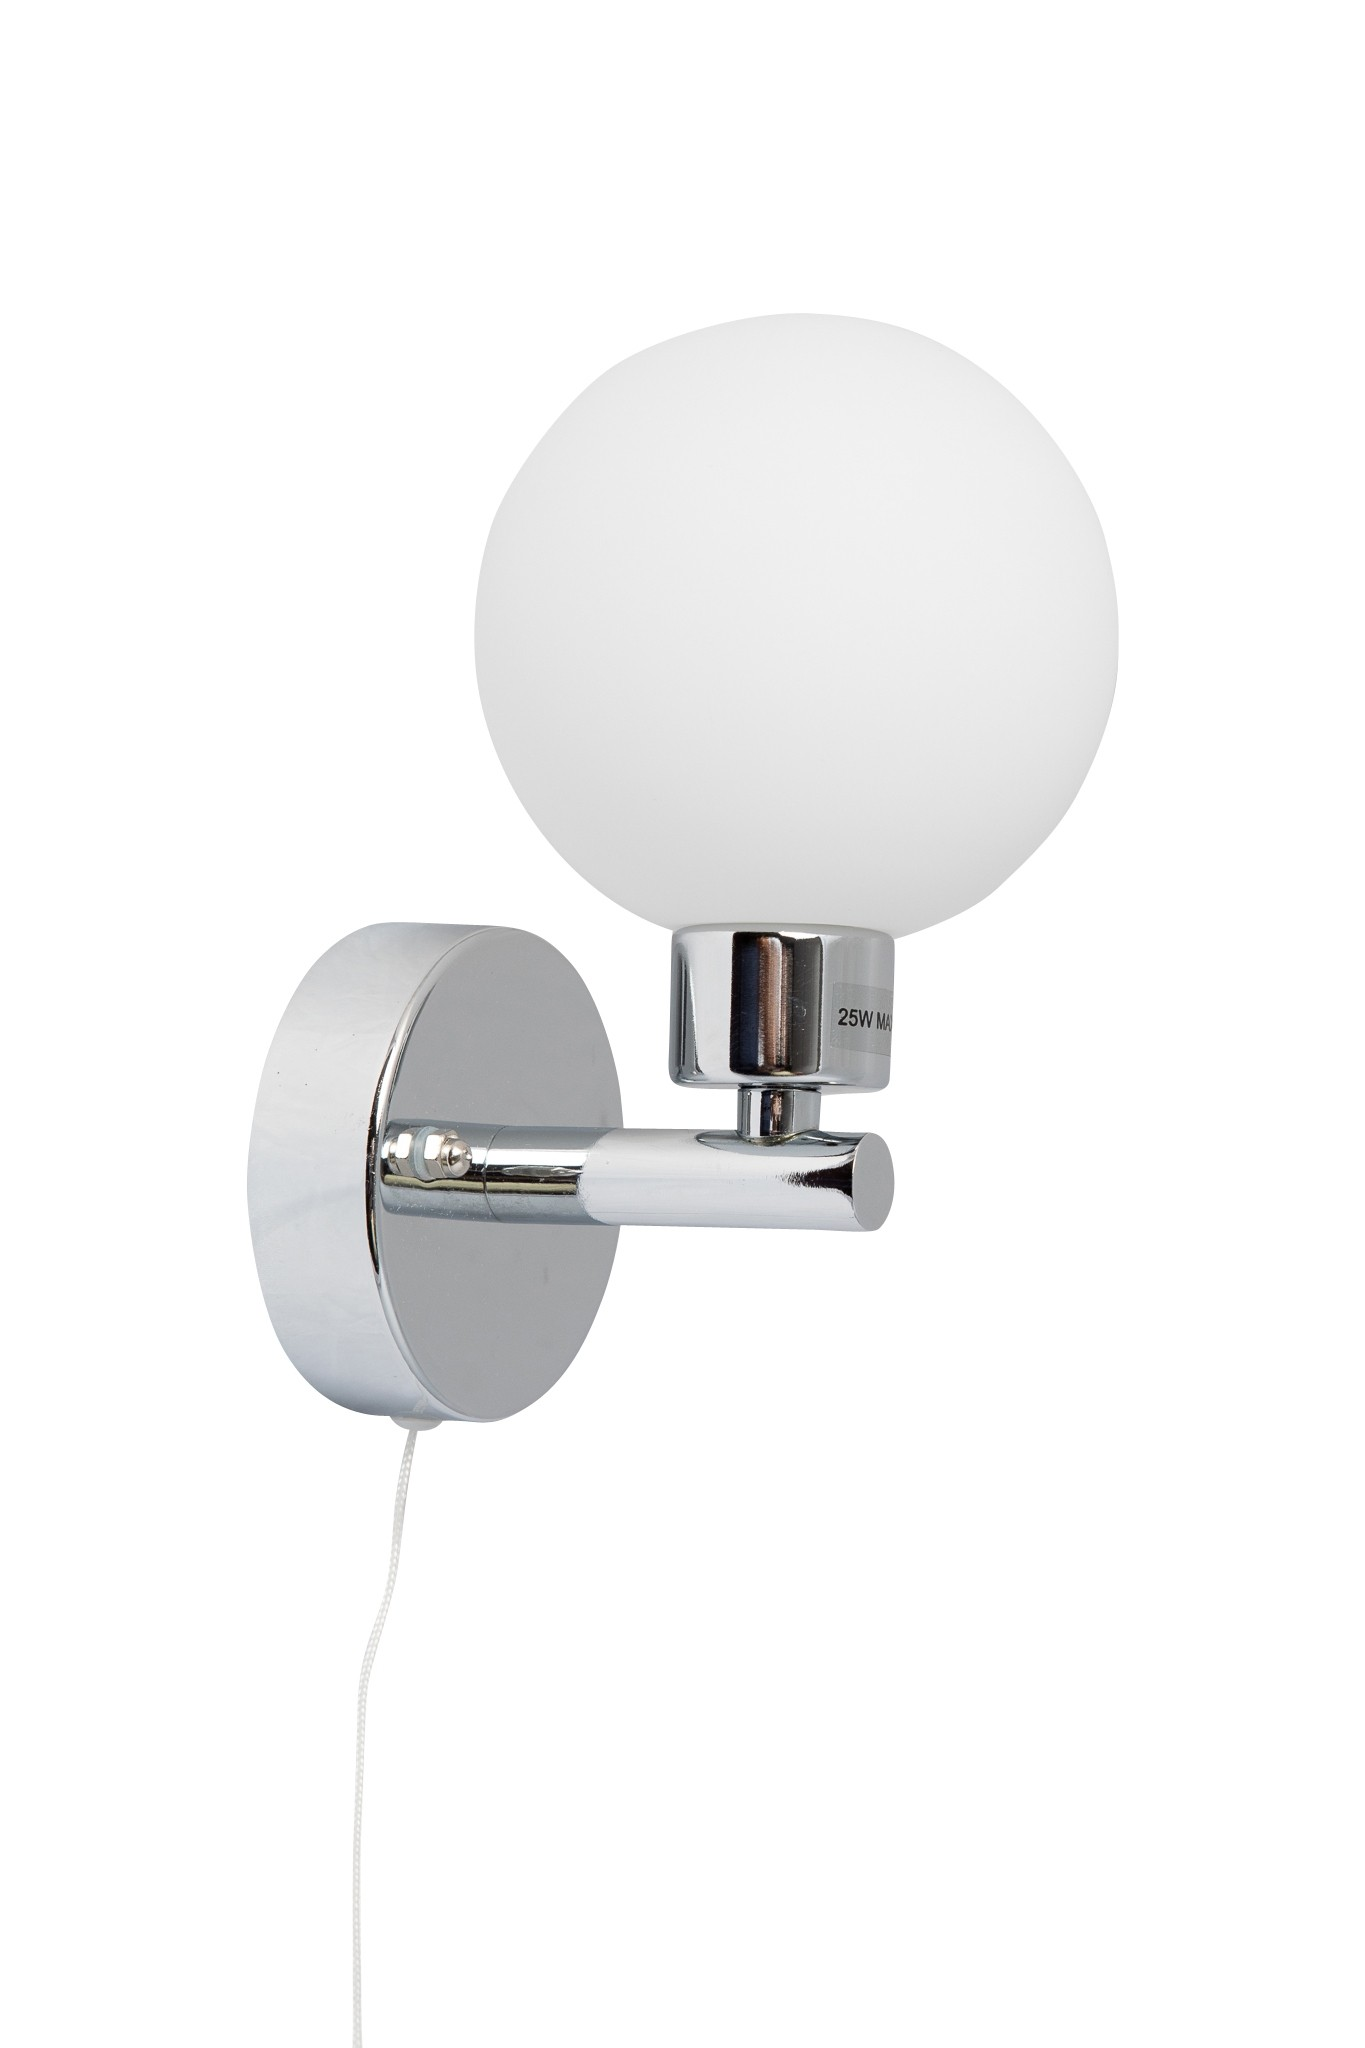 Pair Of Modern Chrome Ip44 Bathroom Wall Light With Pull Cord Switch For Bathrooms Pullswitch Polished Globe